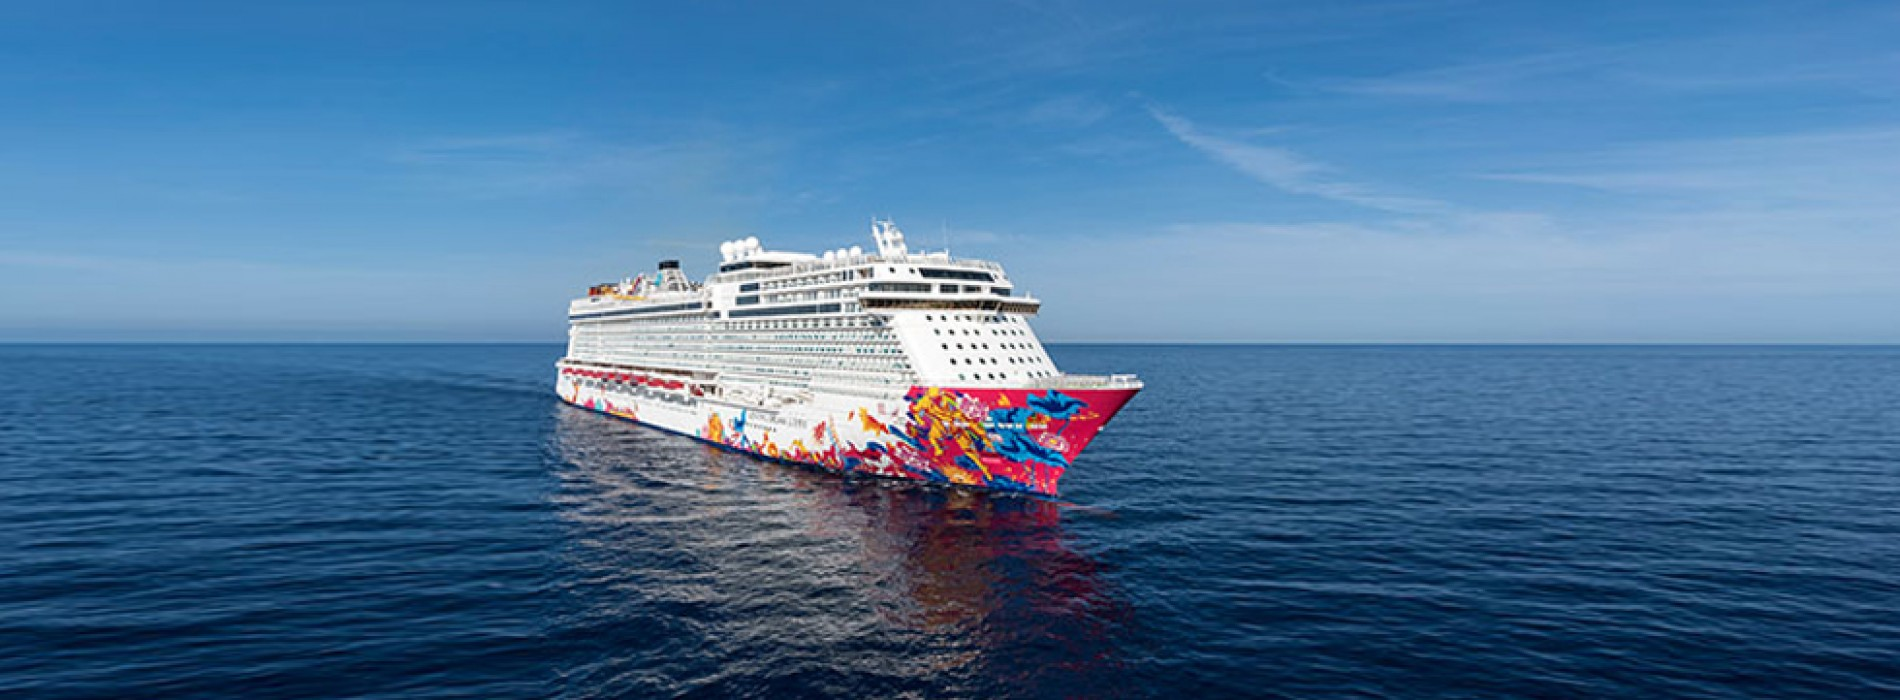 Dream Cruises unveils Asia's first all – inclusive Luxury Cruise concept for Dream Palace Suites